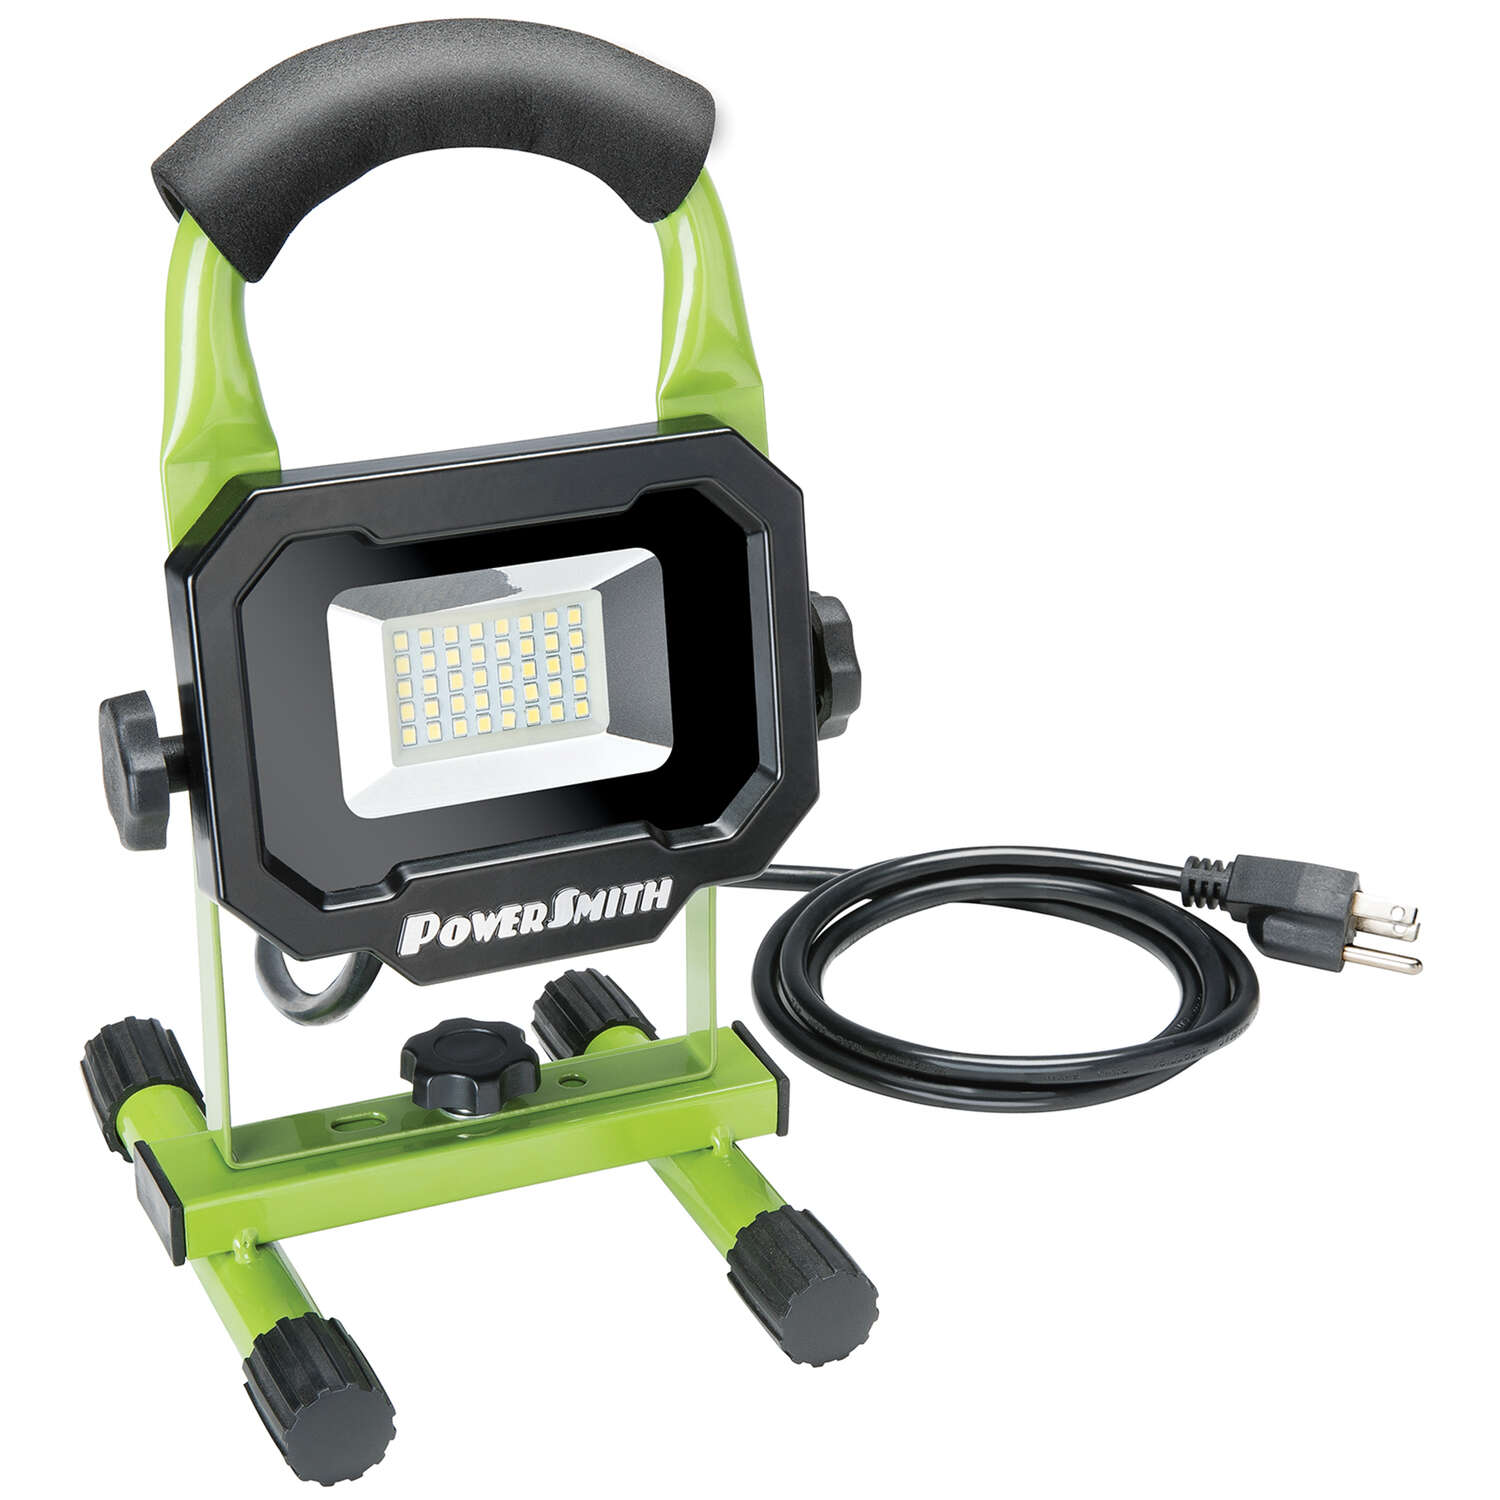 PowerSmith  1,800 lumens LED  Corded  Stand (H or Scissor)  Work Light